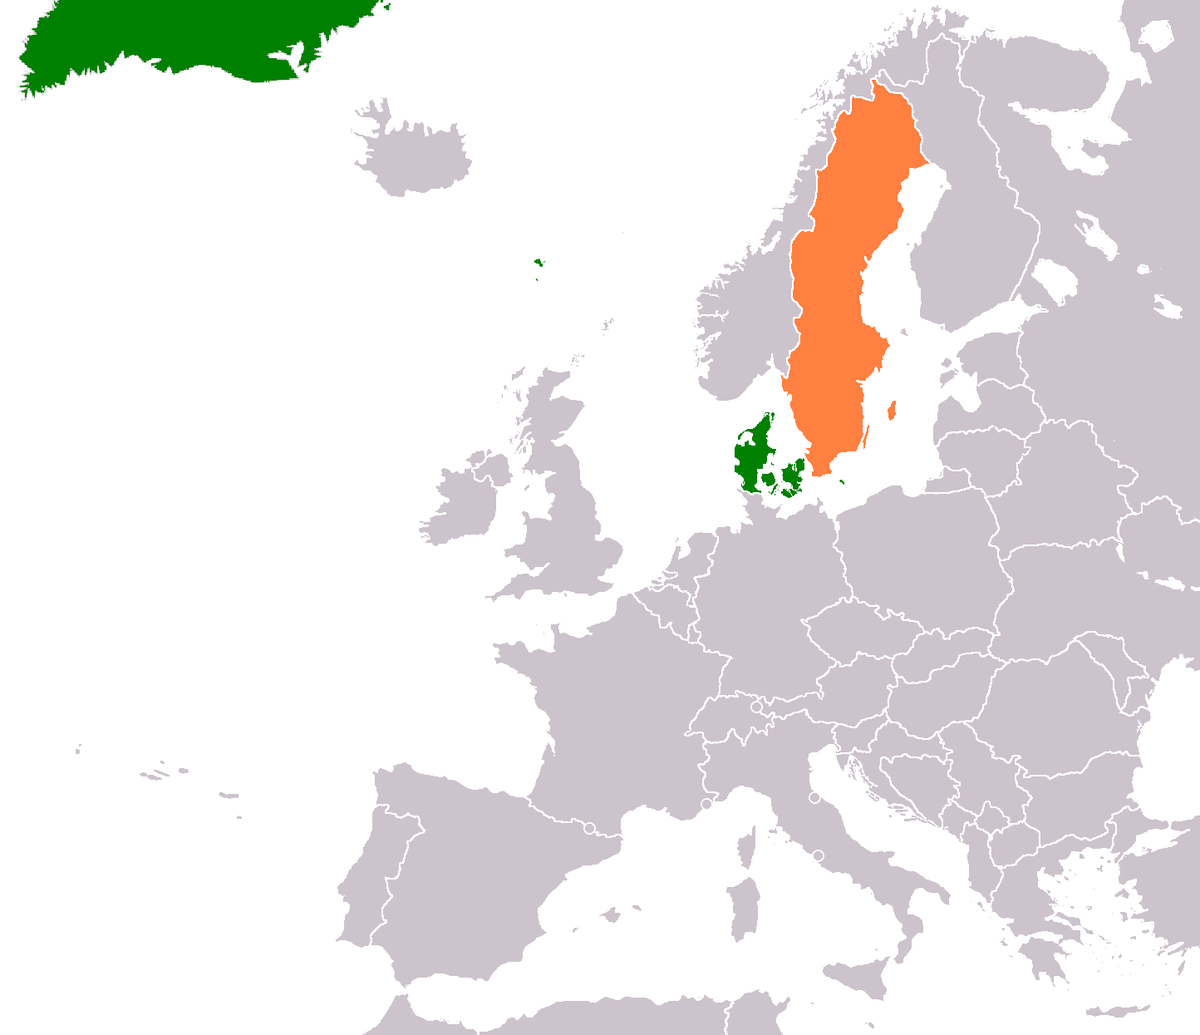 DenmarkSweden Relations Wikipedia - Sweden full map